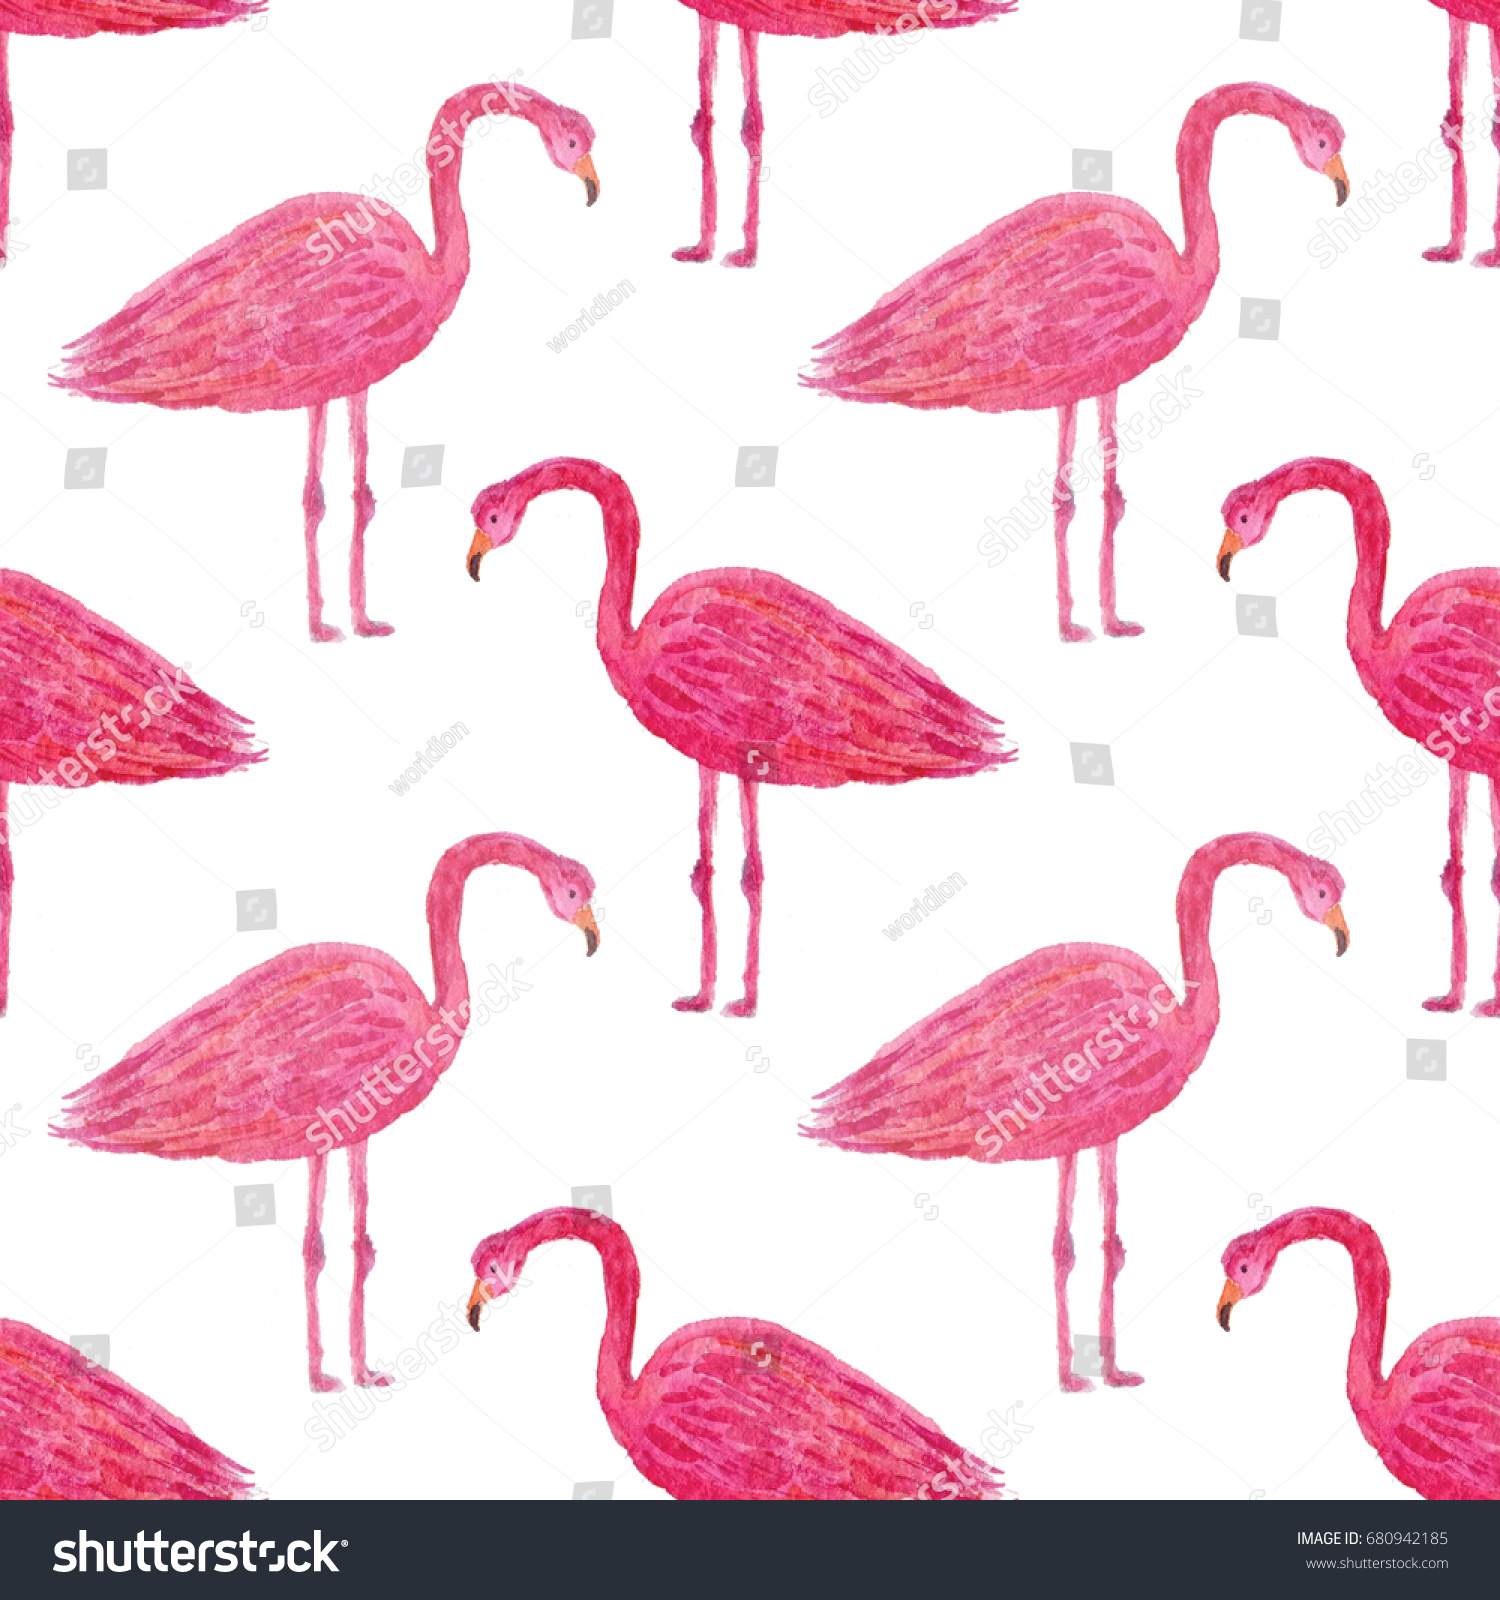 Flamingo pattern Flamingo seamless texture 3d style Isolated on